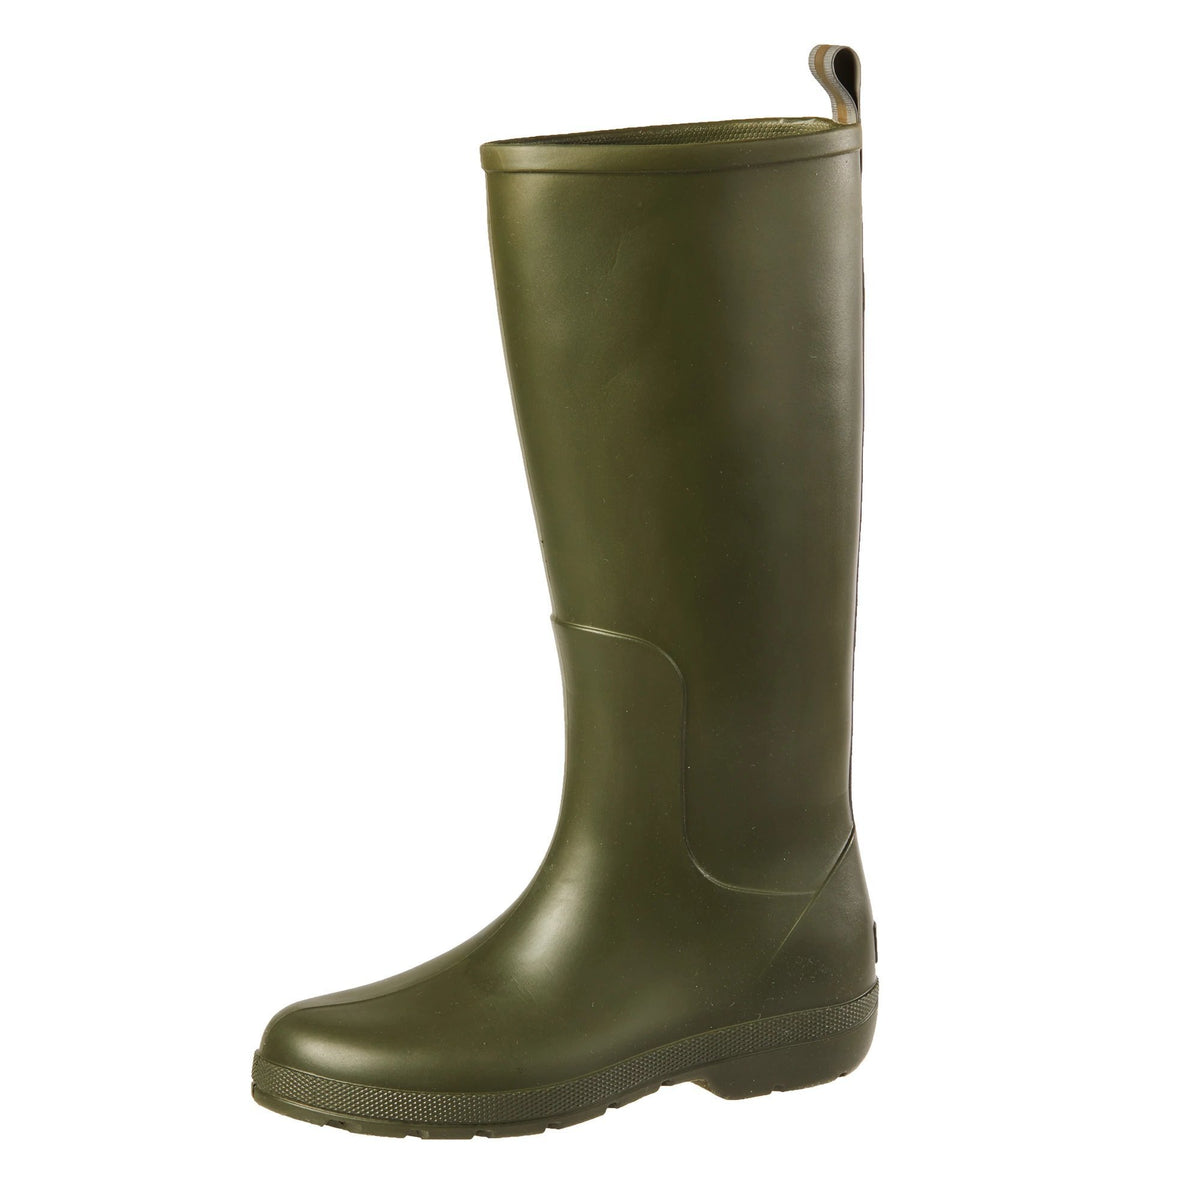 Cirrus™ Women's Claire Tall Rain Boots in Loden Left Angled View